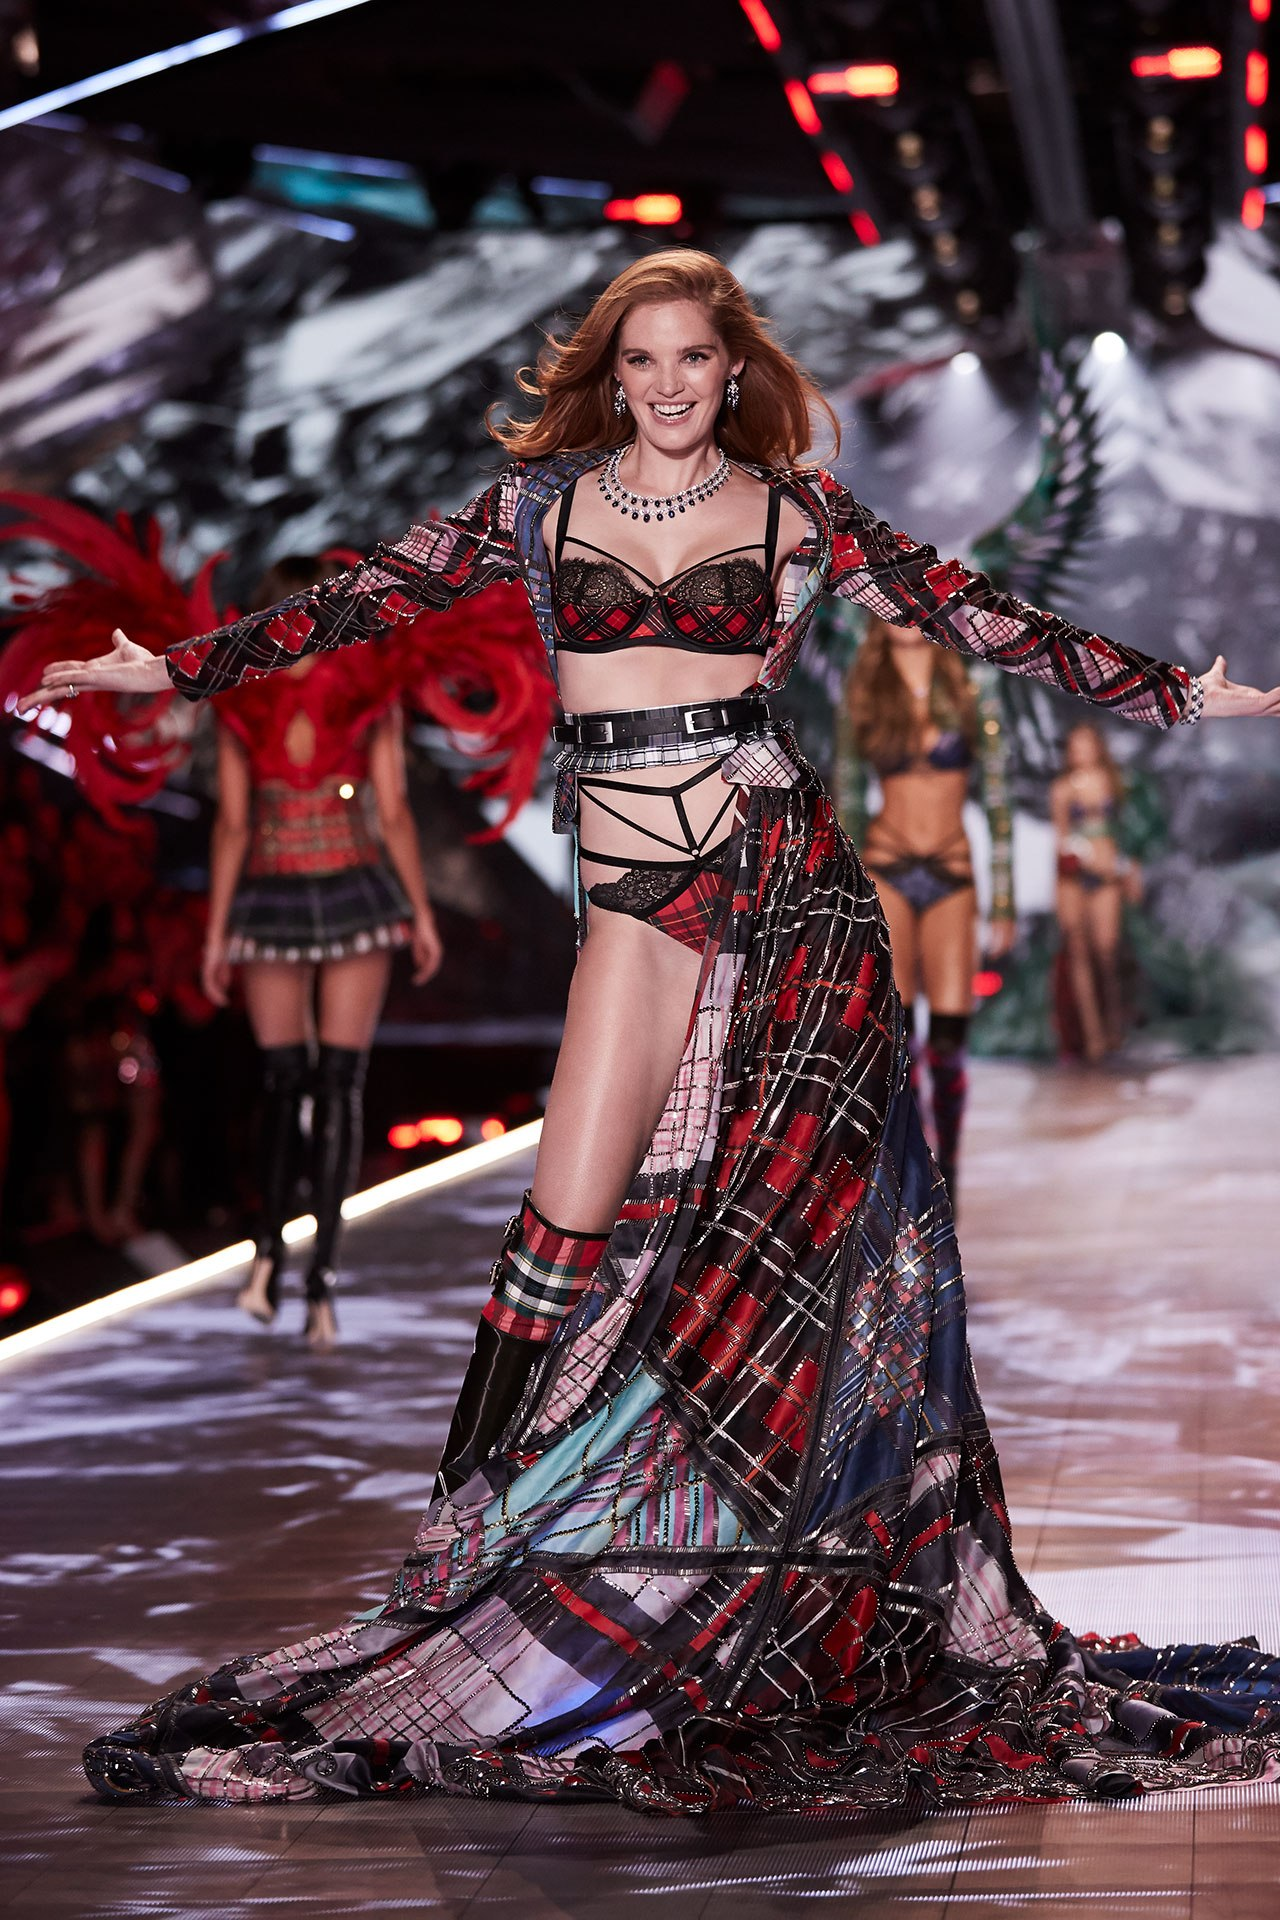 Alexina Graham is now a Victoria's Secret Angel!